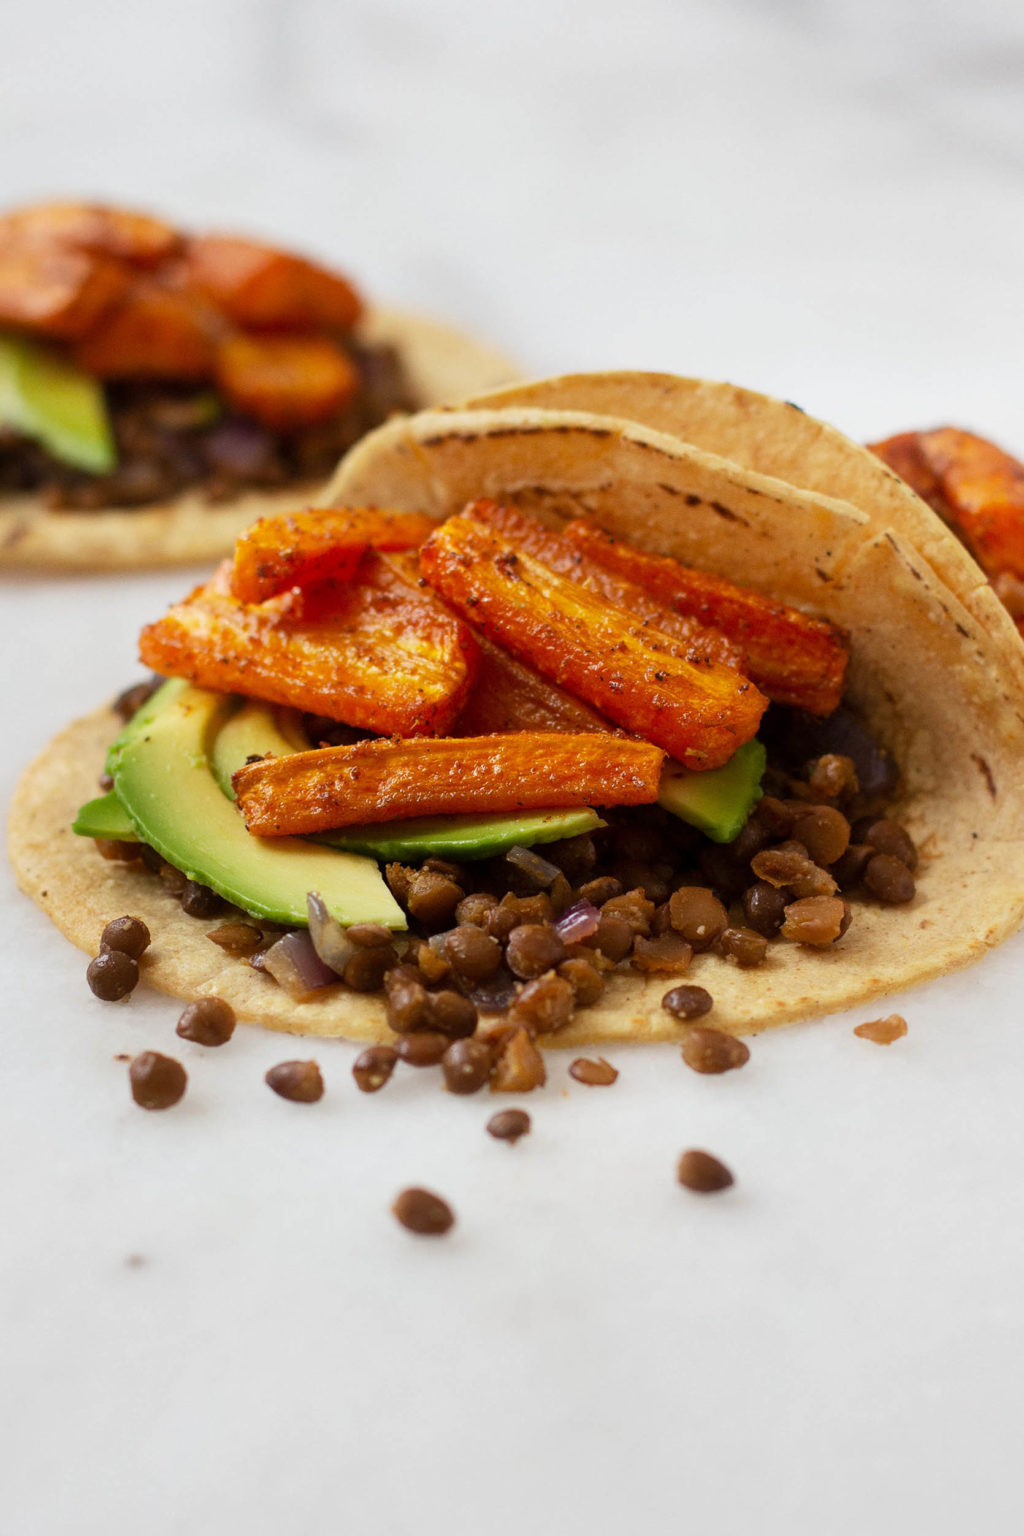 An angled shot of open, vegan tacos with a carrot and lentil filling, spilling onto a marble surface.